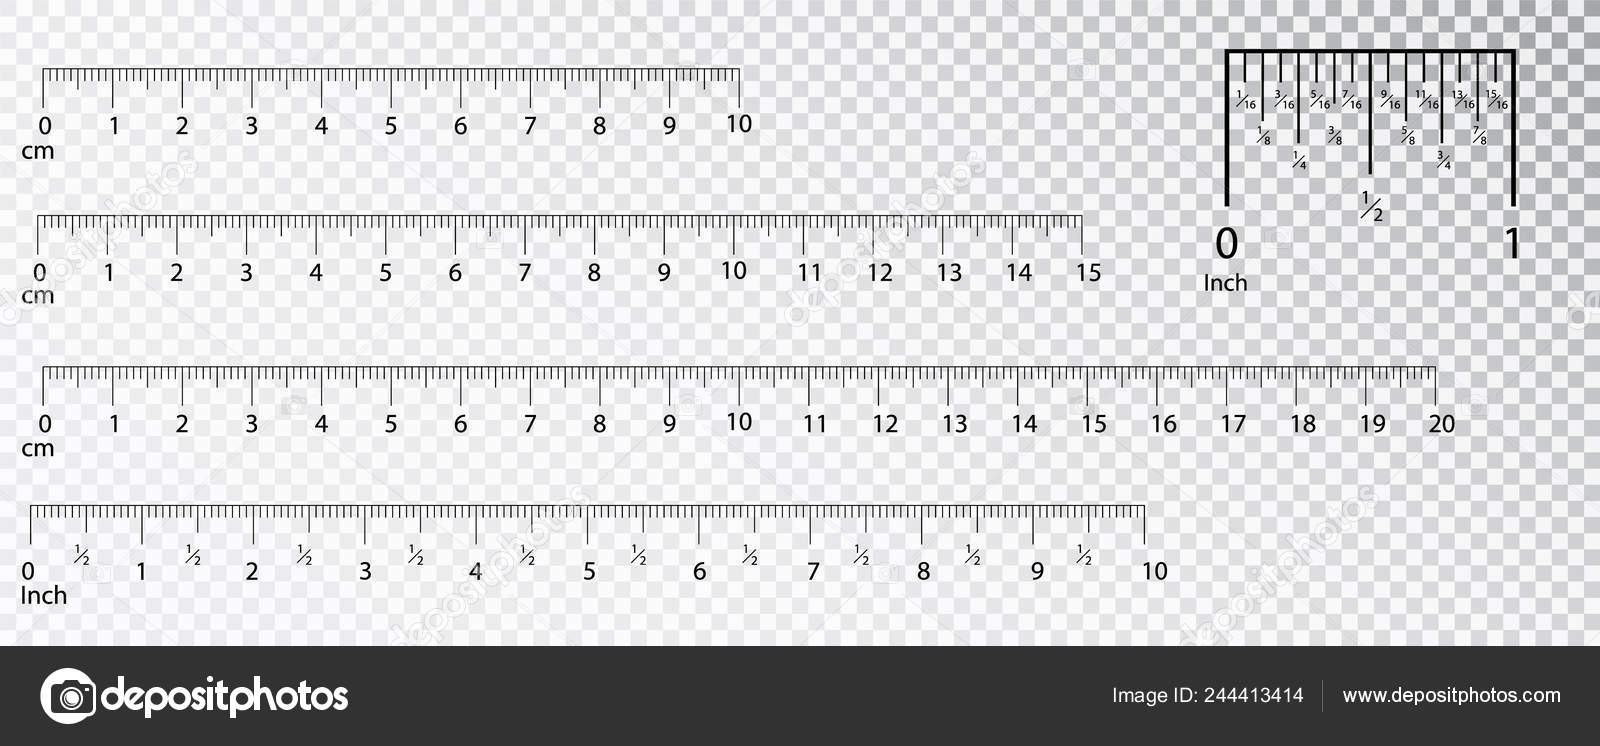 Ich Cm Rulers Inch And Metric Rulers Measuring Tool Centimeters And